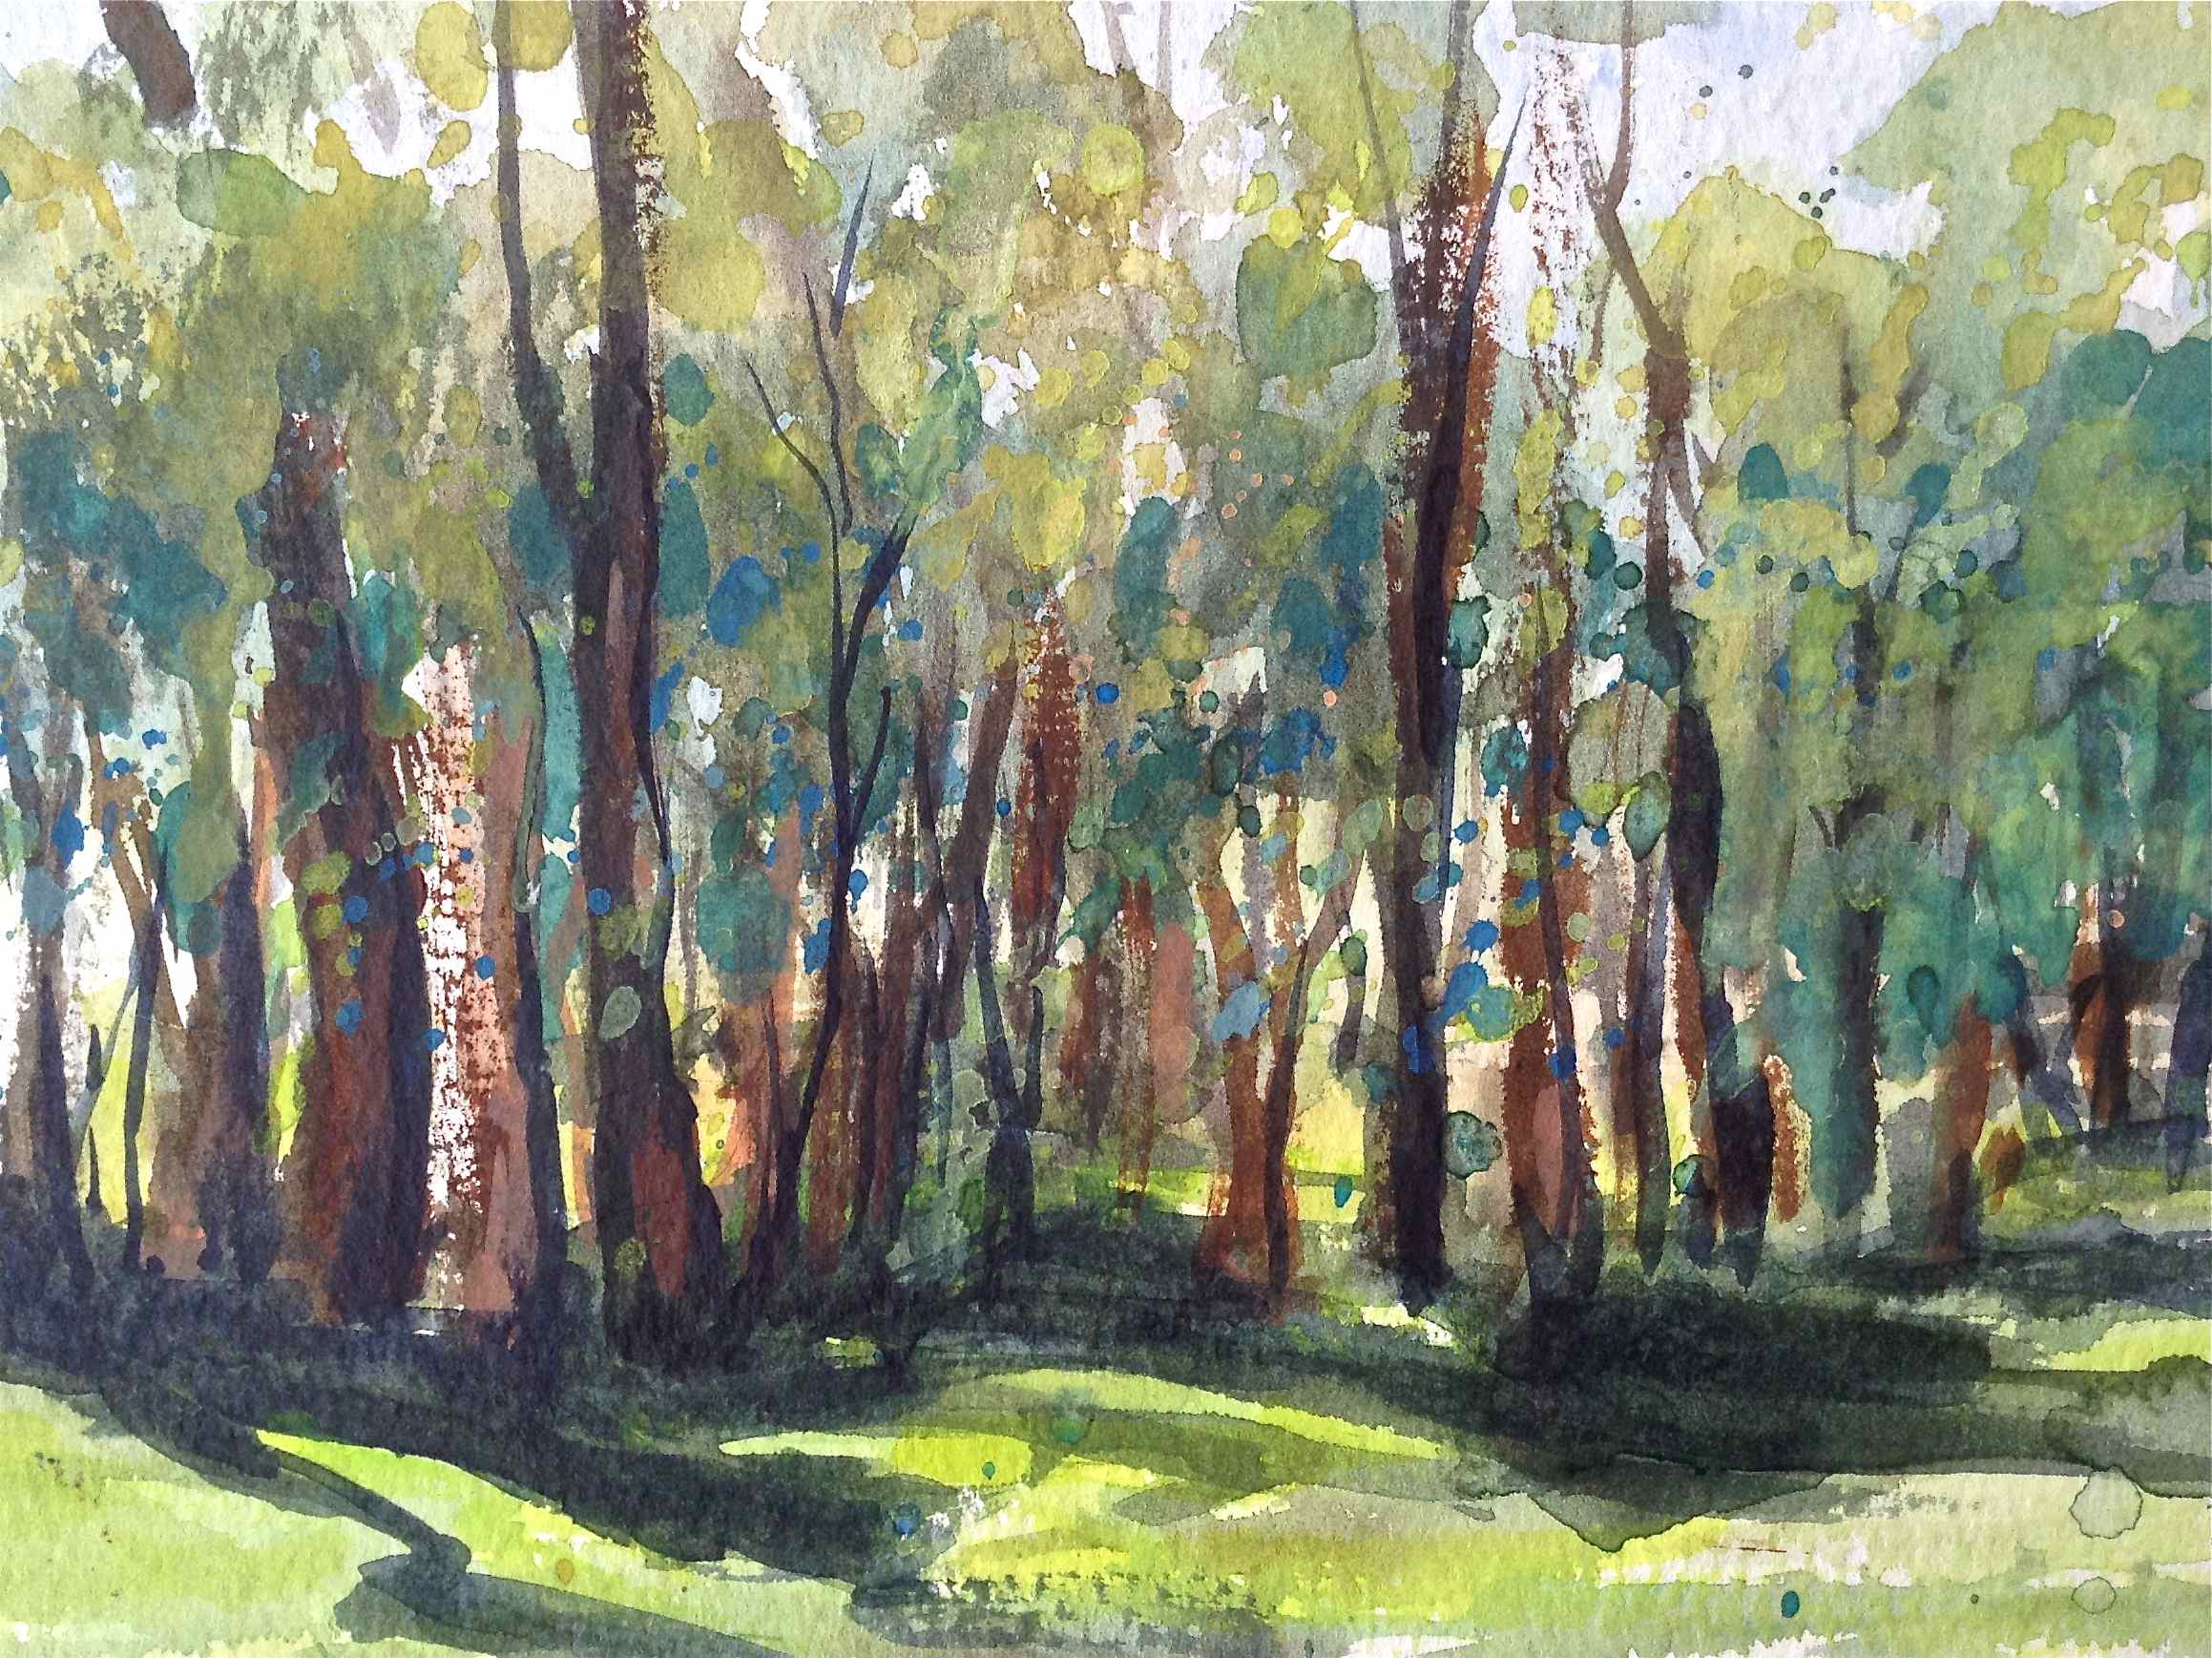 impressionist watercolor landscape, painting foliage greens, hornsby bushland debiriley.com